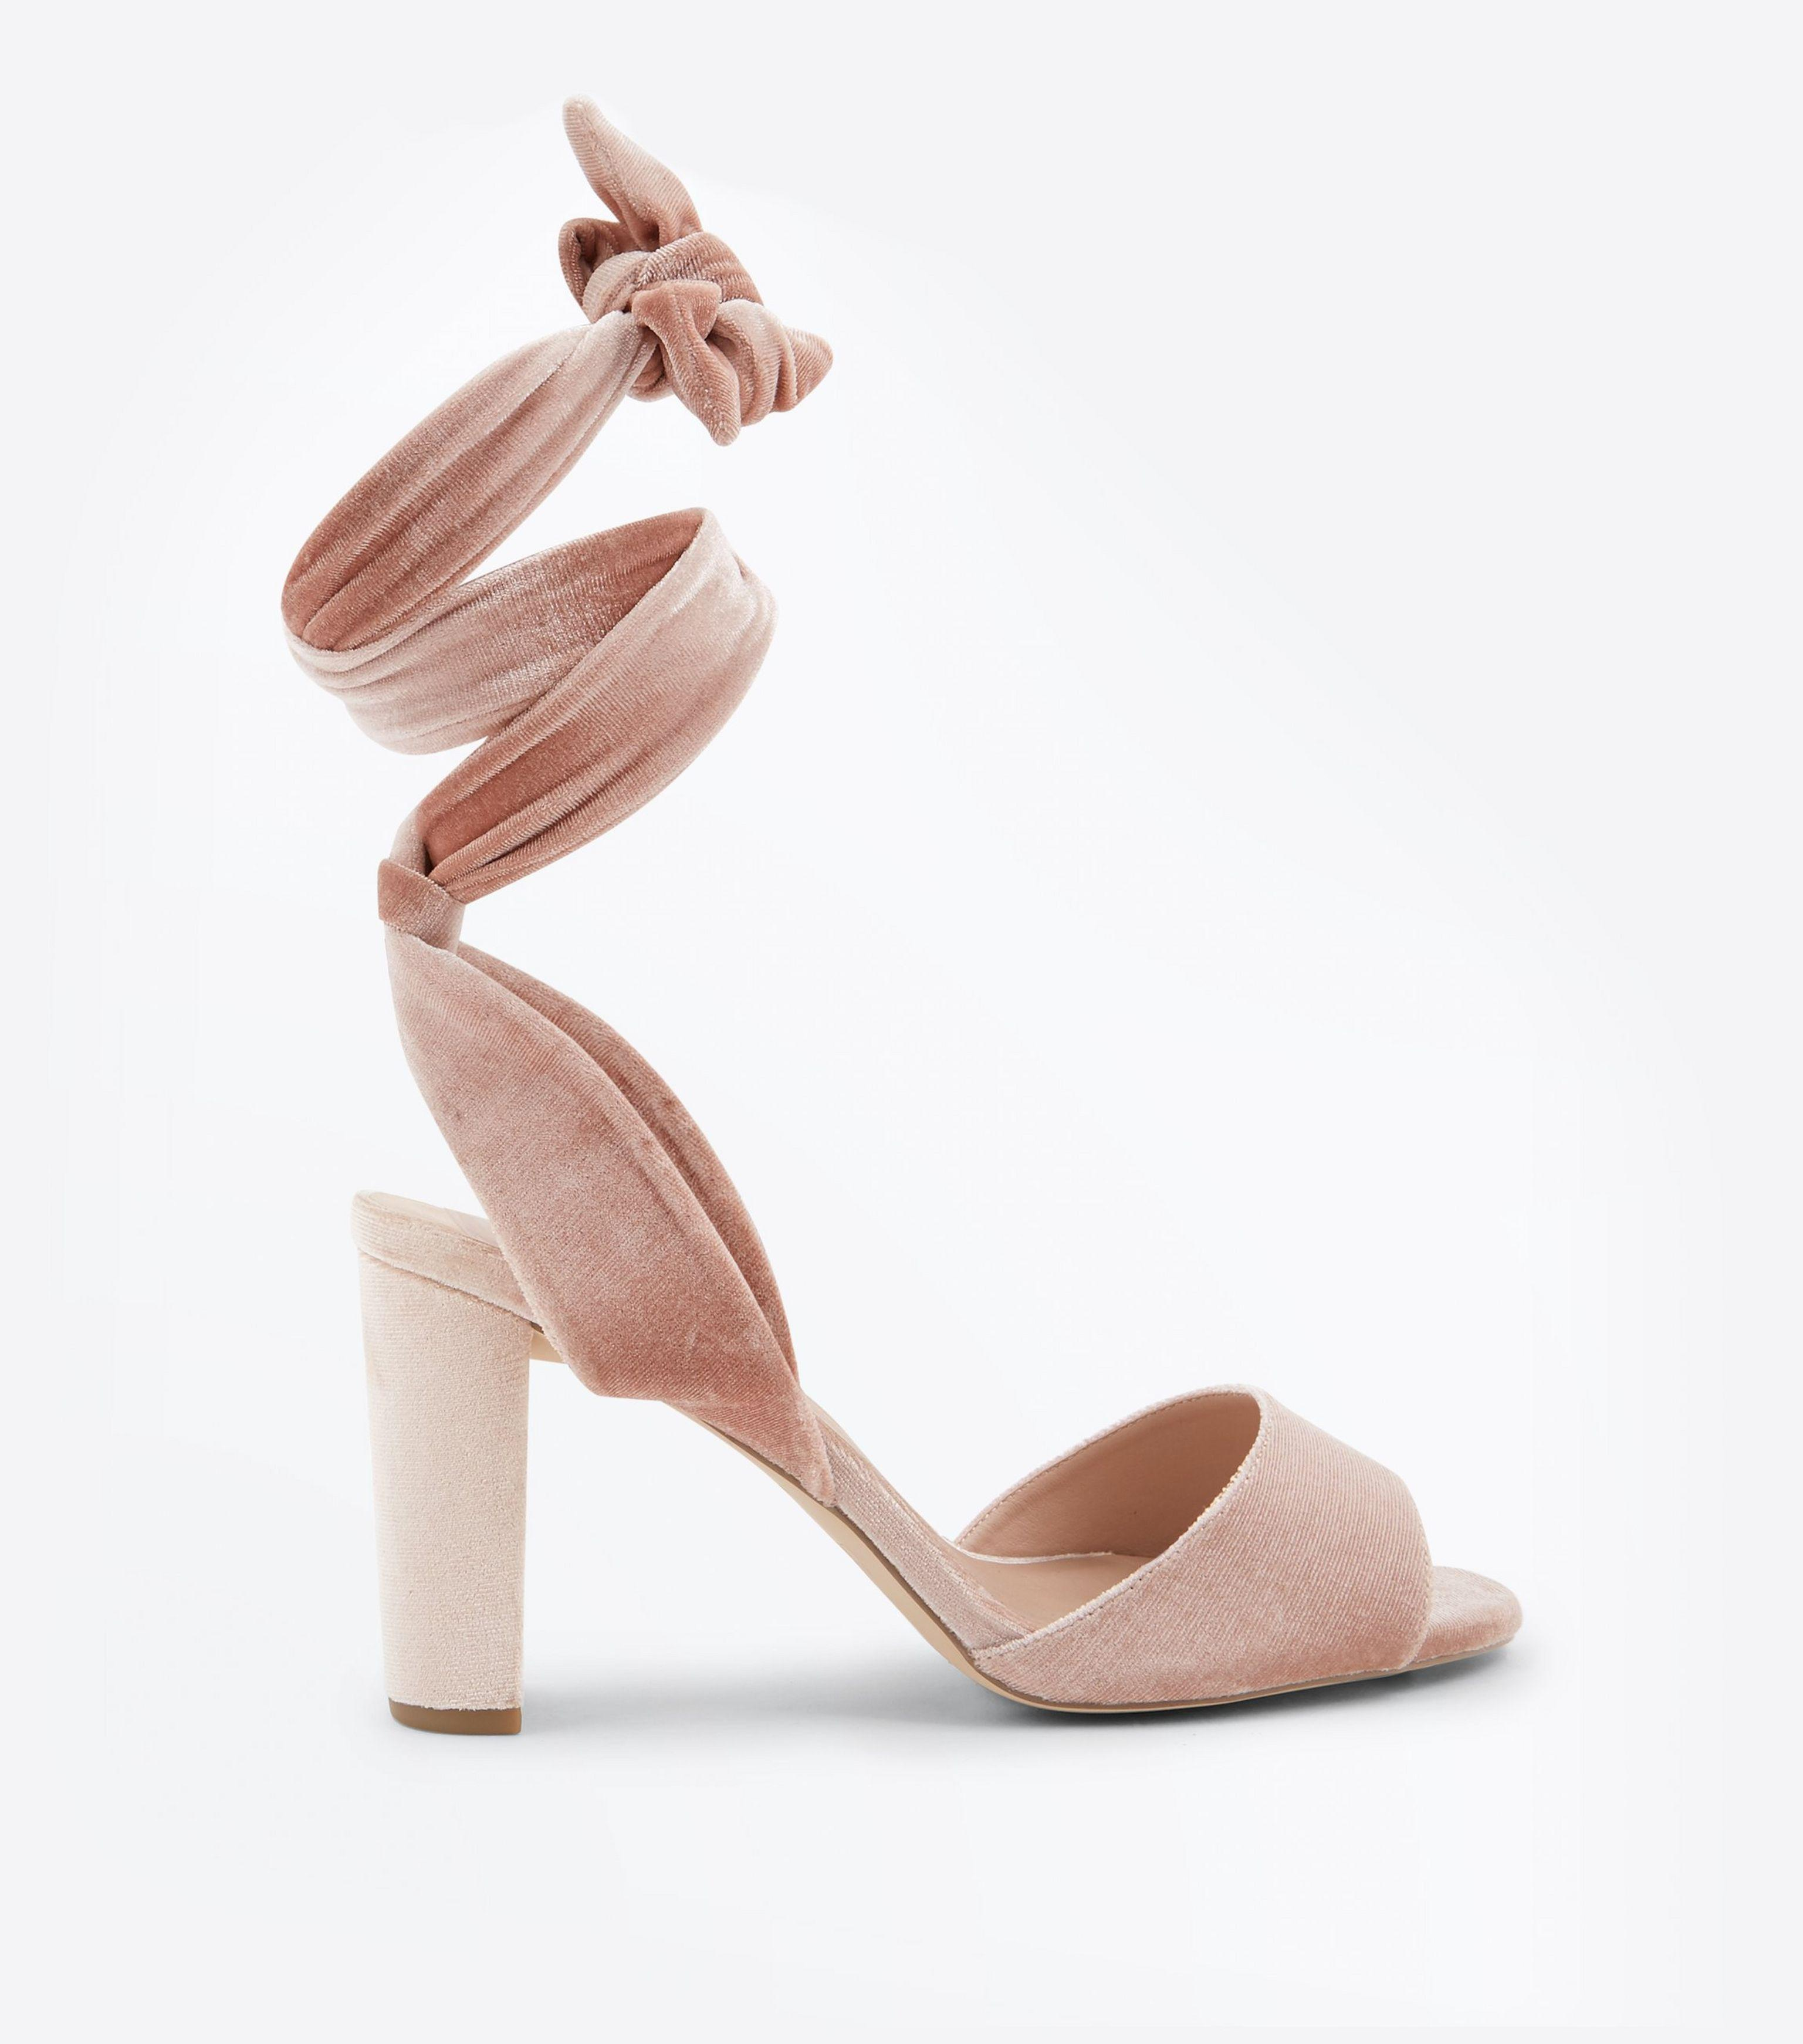 9a181fbf49a5e2 New Look Wide Fit Pink Velvet Tie Up Block Heel Sandals in Pink - Lyst